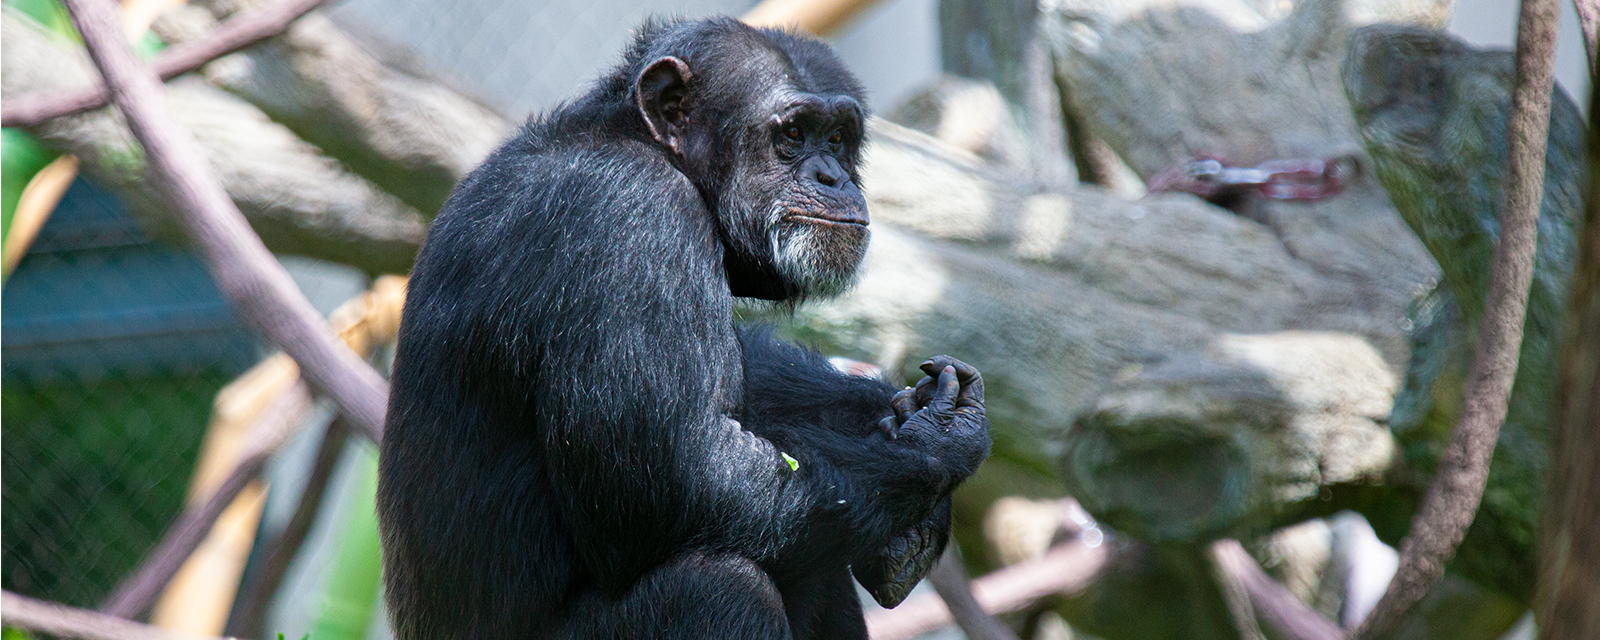 Chimpanzee in exhibit